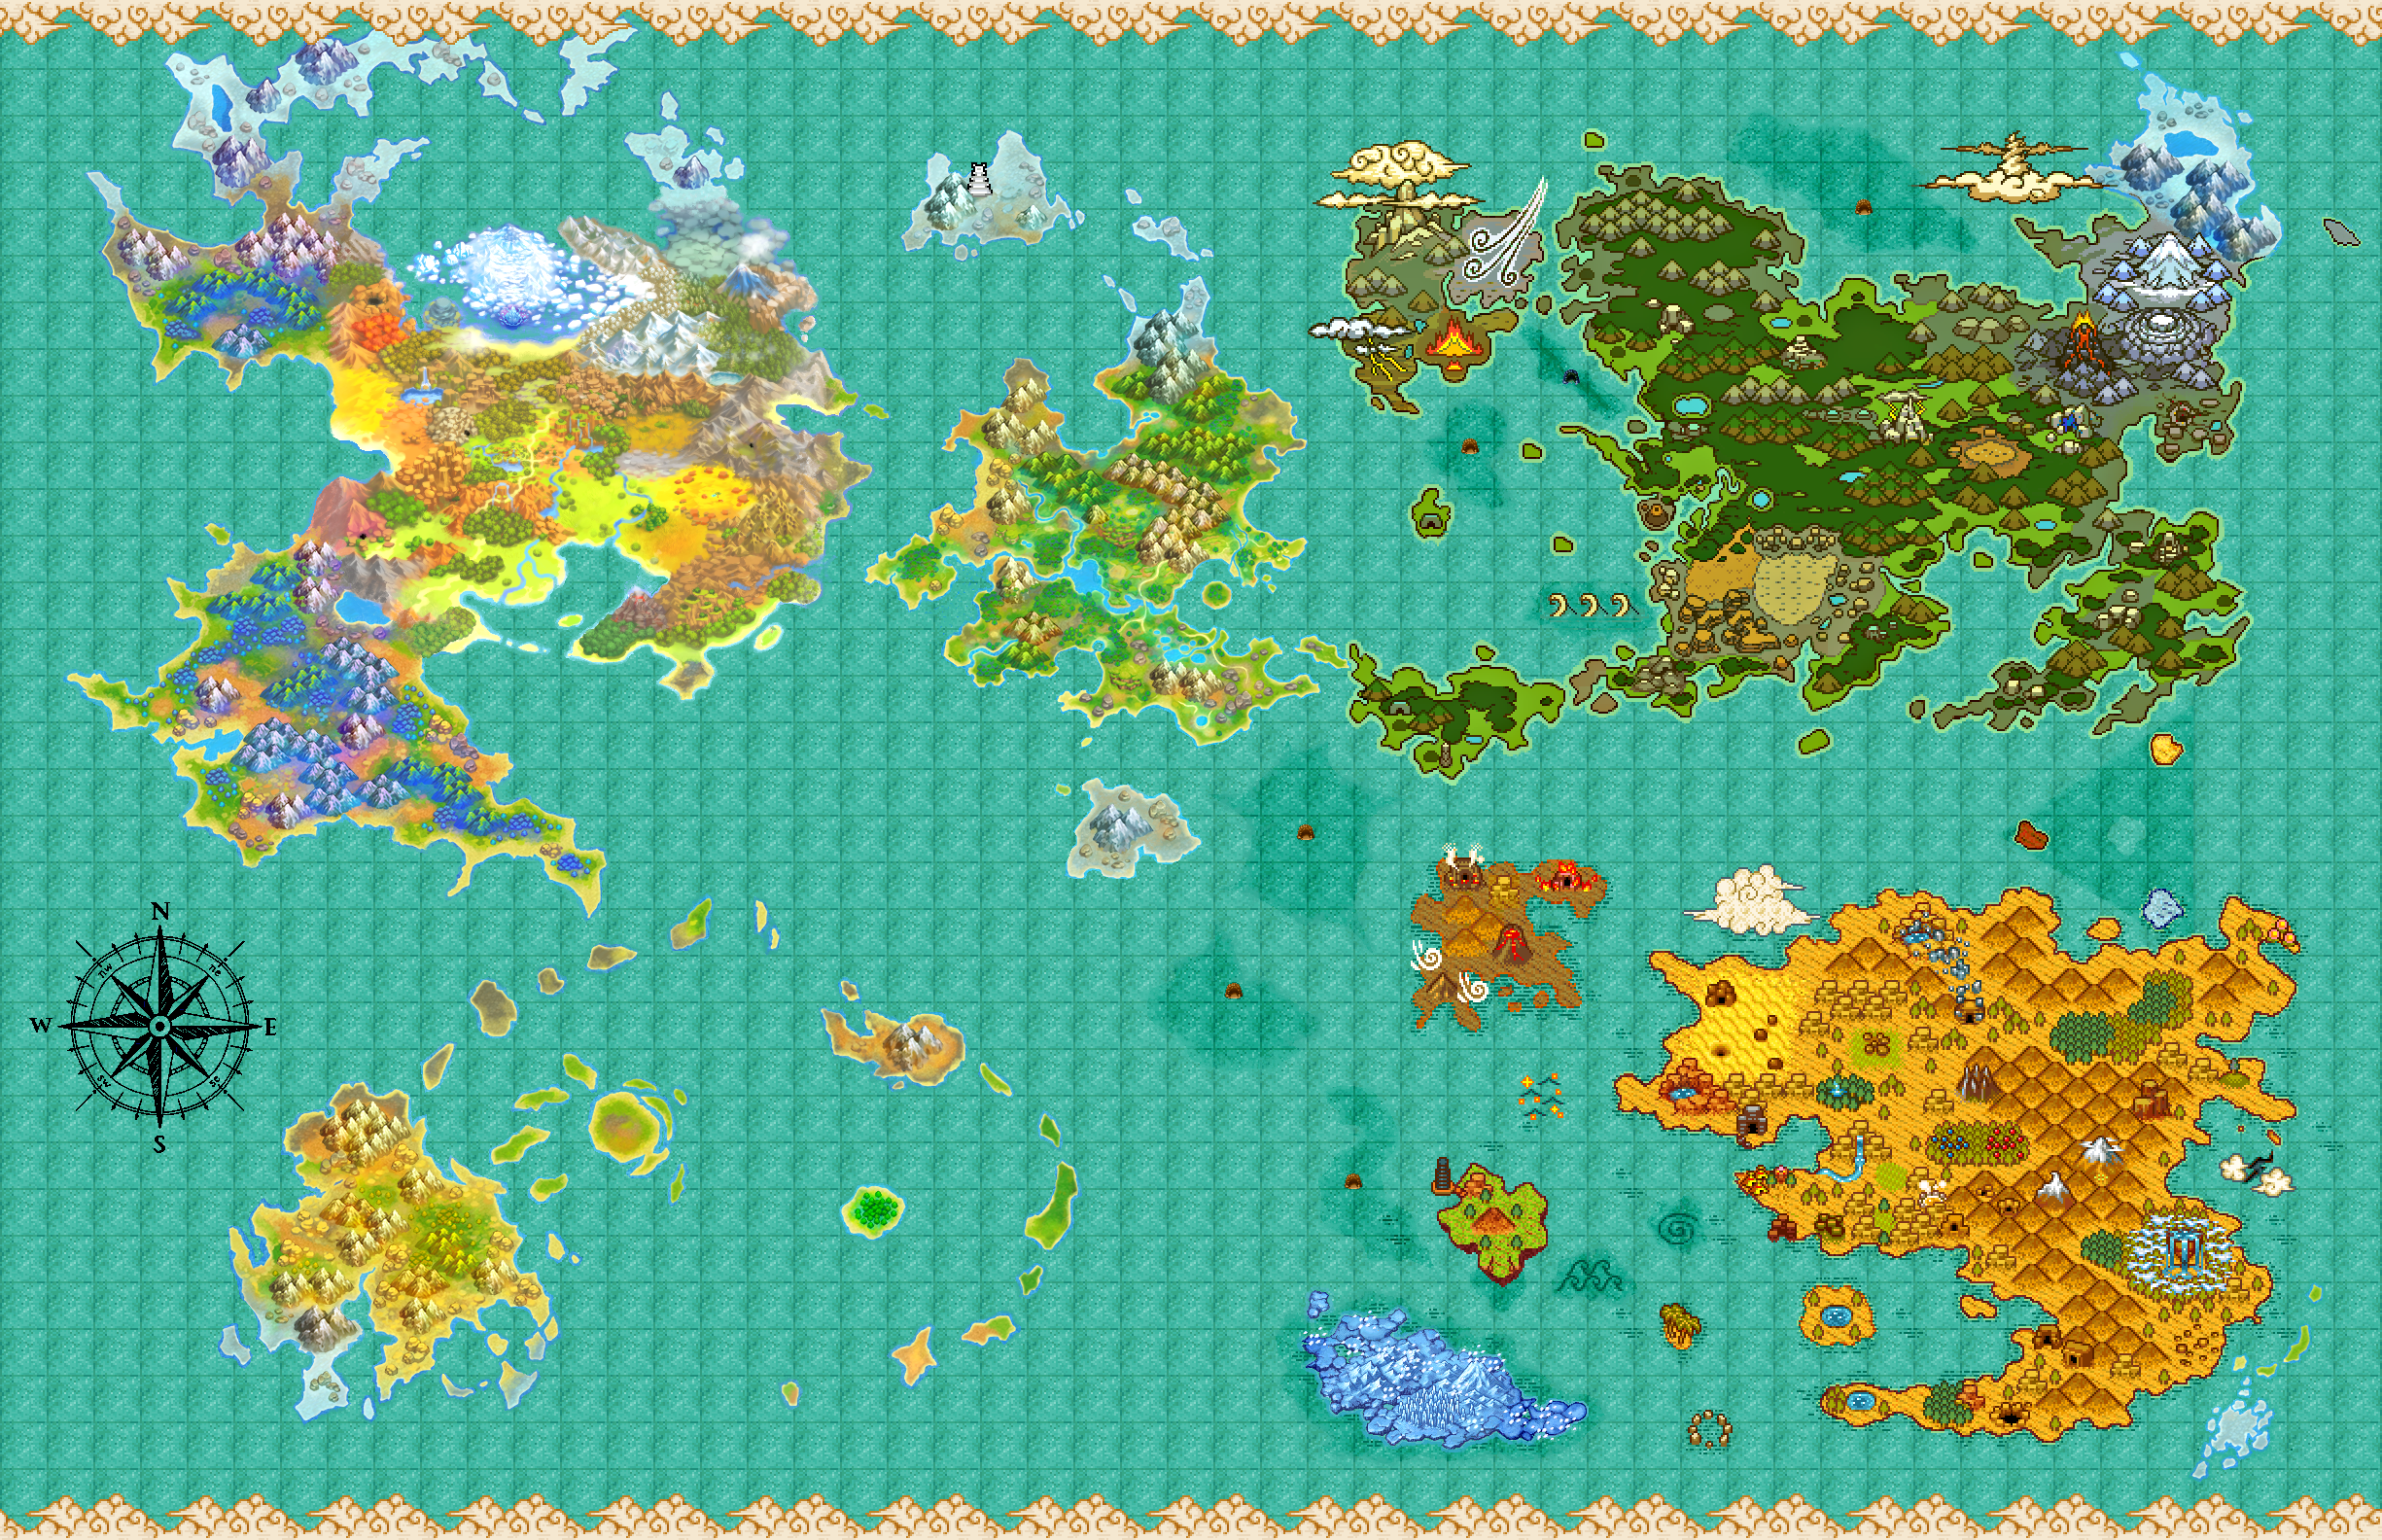 Pokemon Mystery Dungeon World Map | Pokemon, Dungeon maps ...